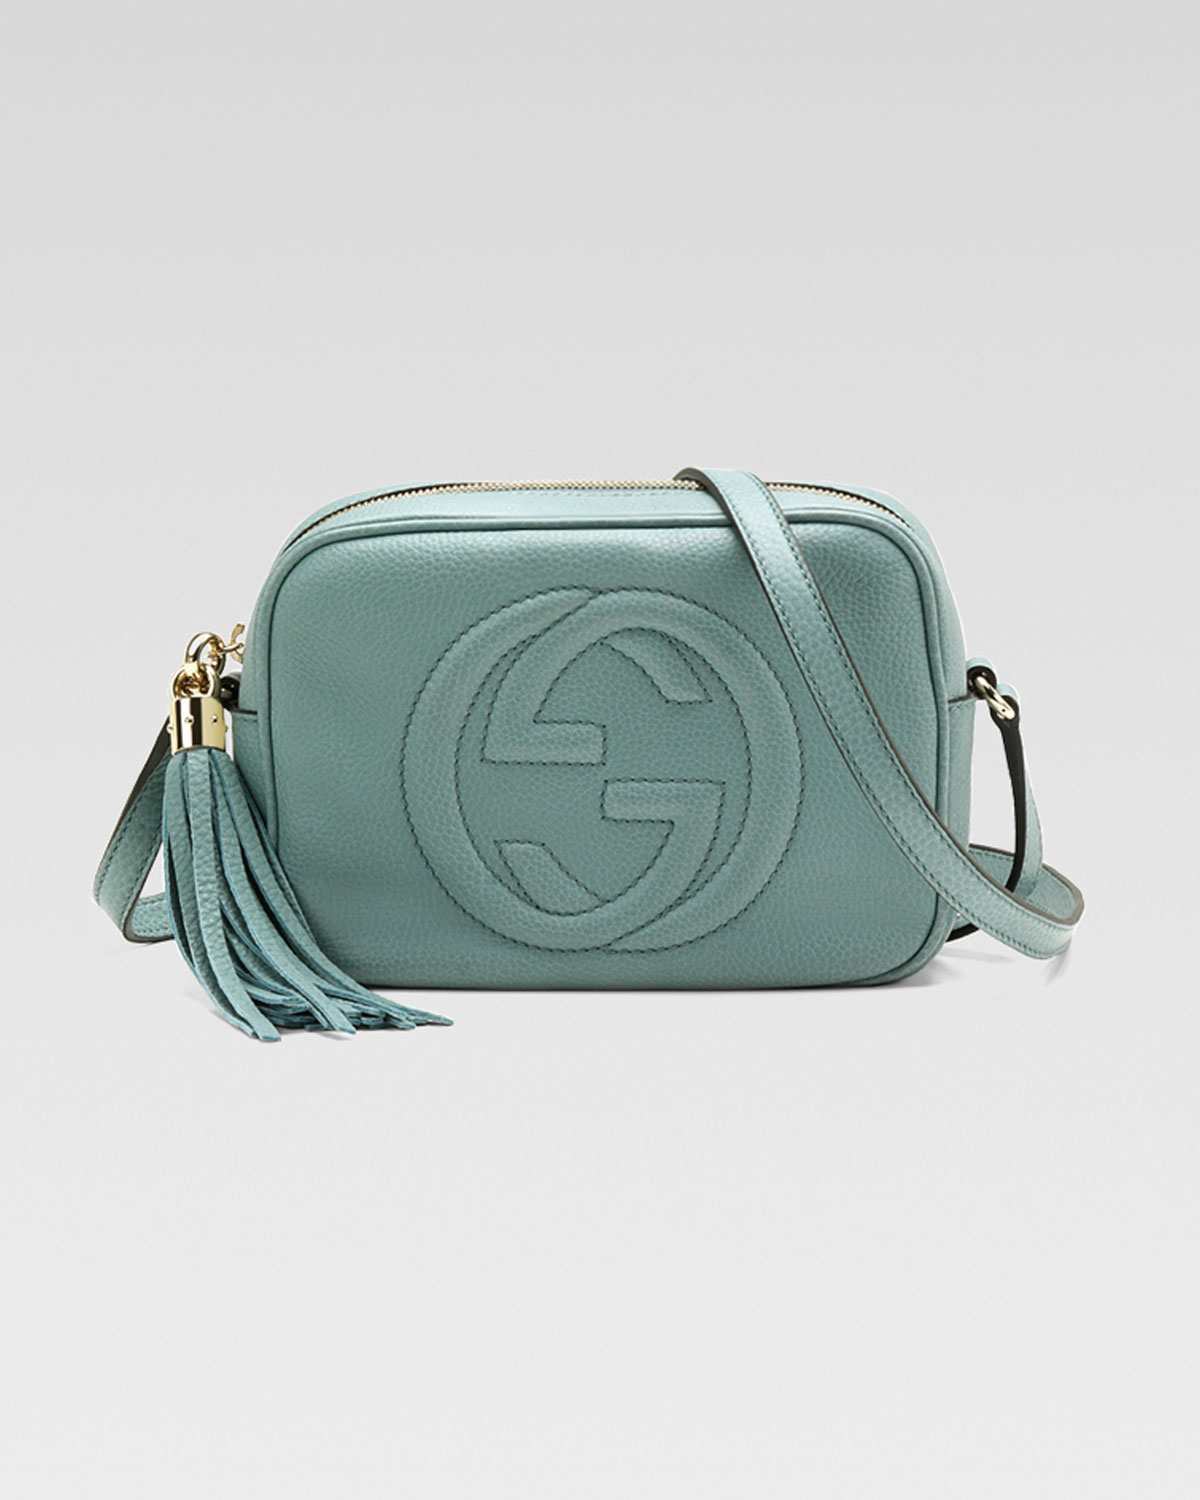 1862d5265f94 Gucci Soho Leather Disco Bag Pool Water in Green - Lyst